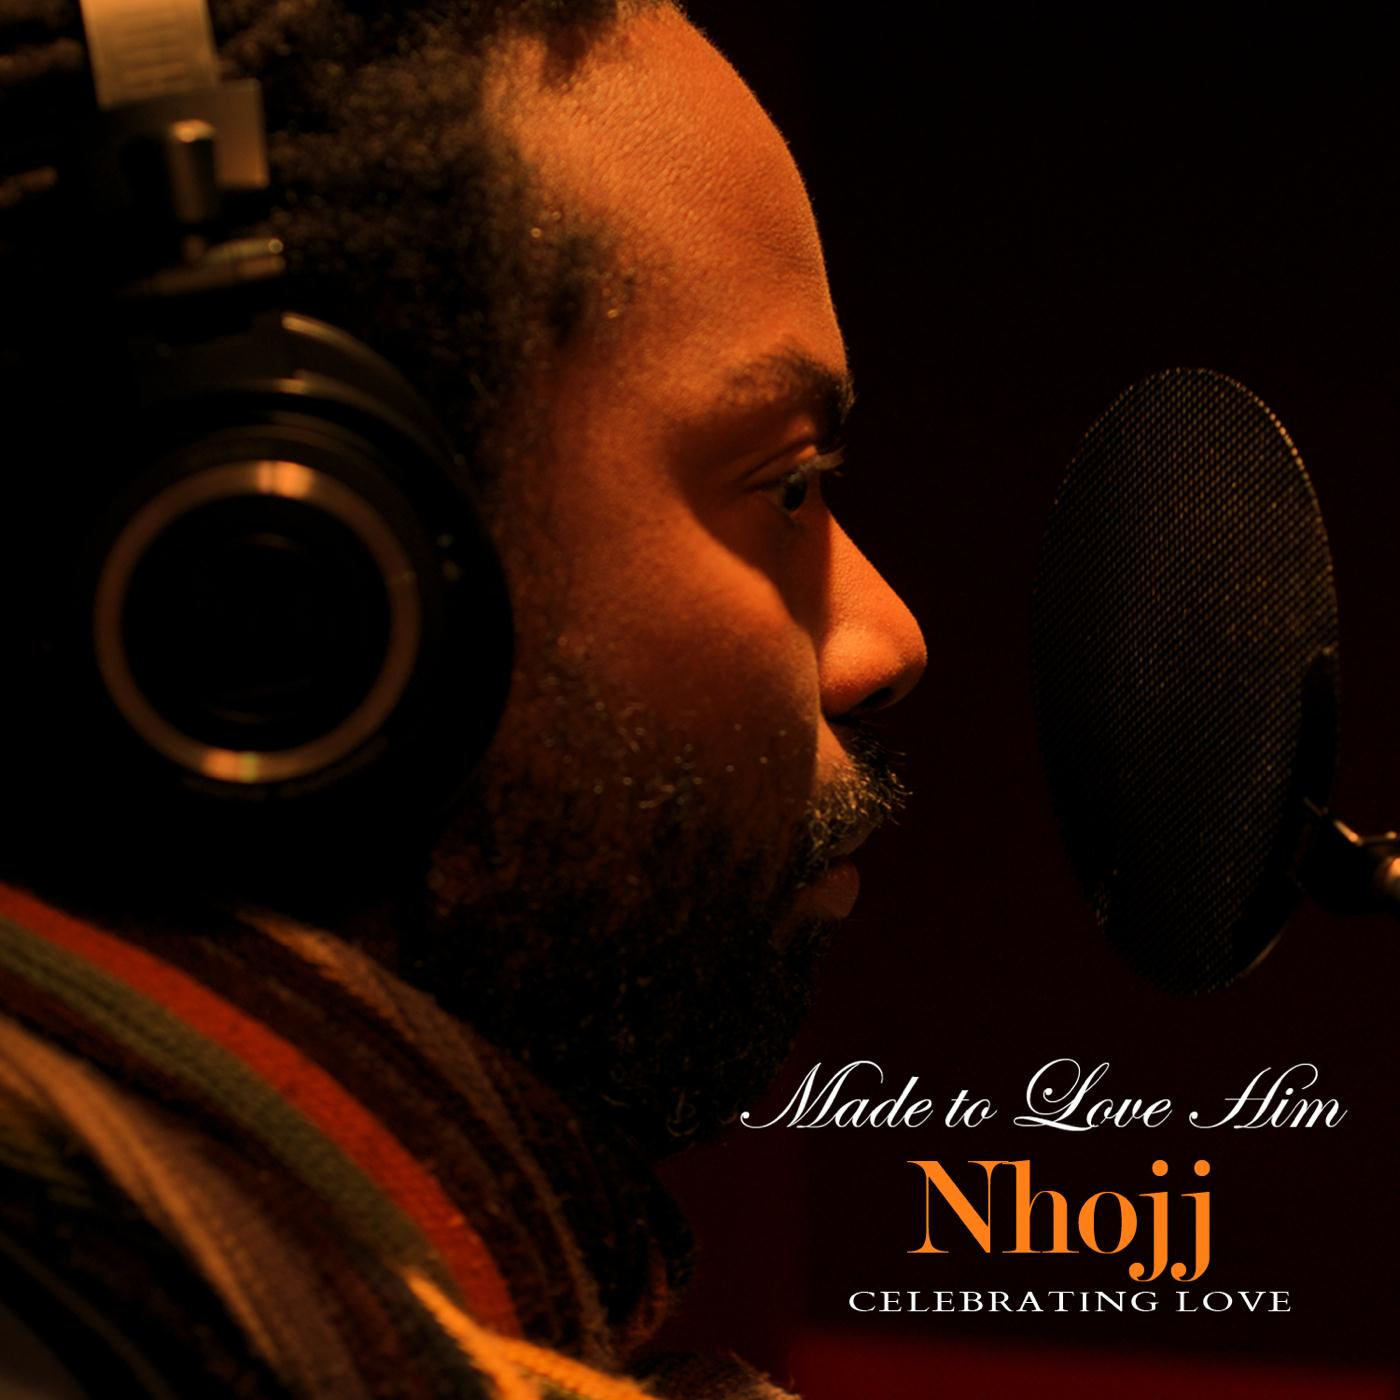 nhojj_made_to_Love_him_albumart